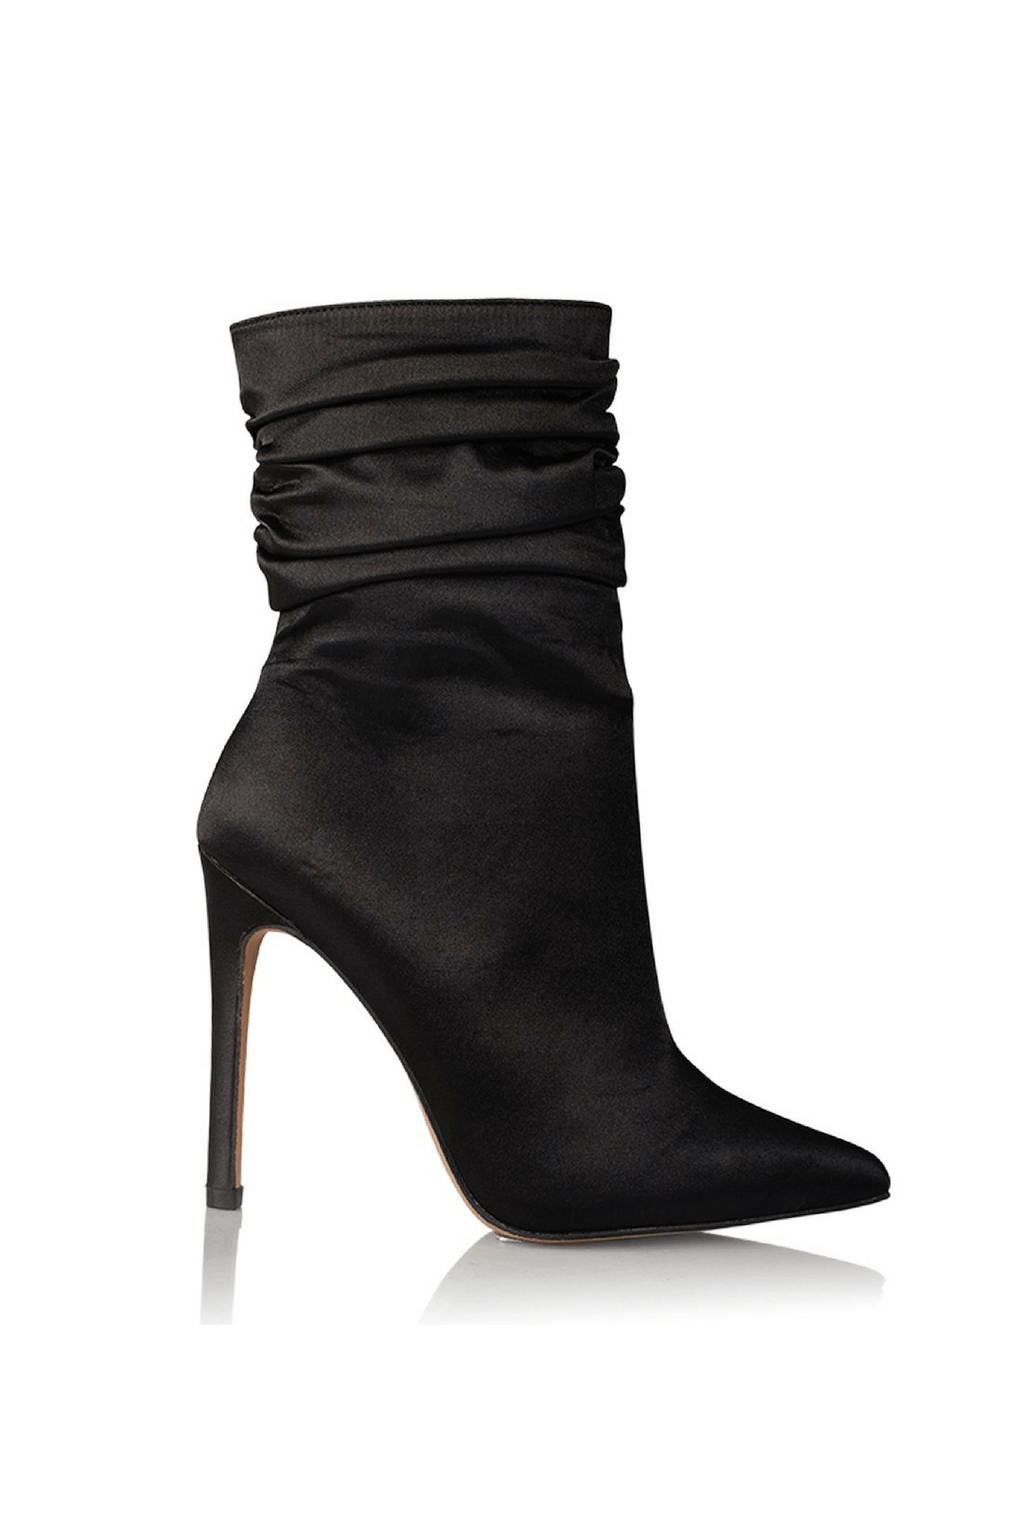 Fluer Boots in Black Satin- Billini Shoes